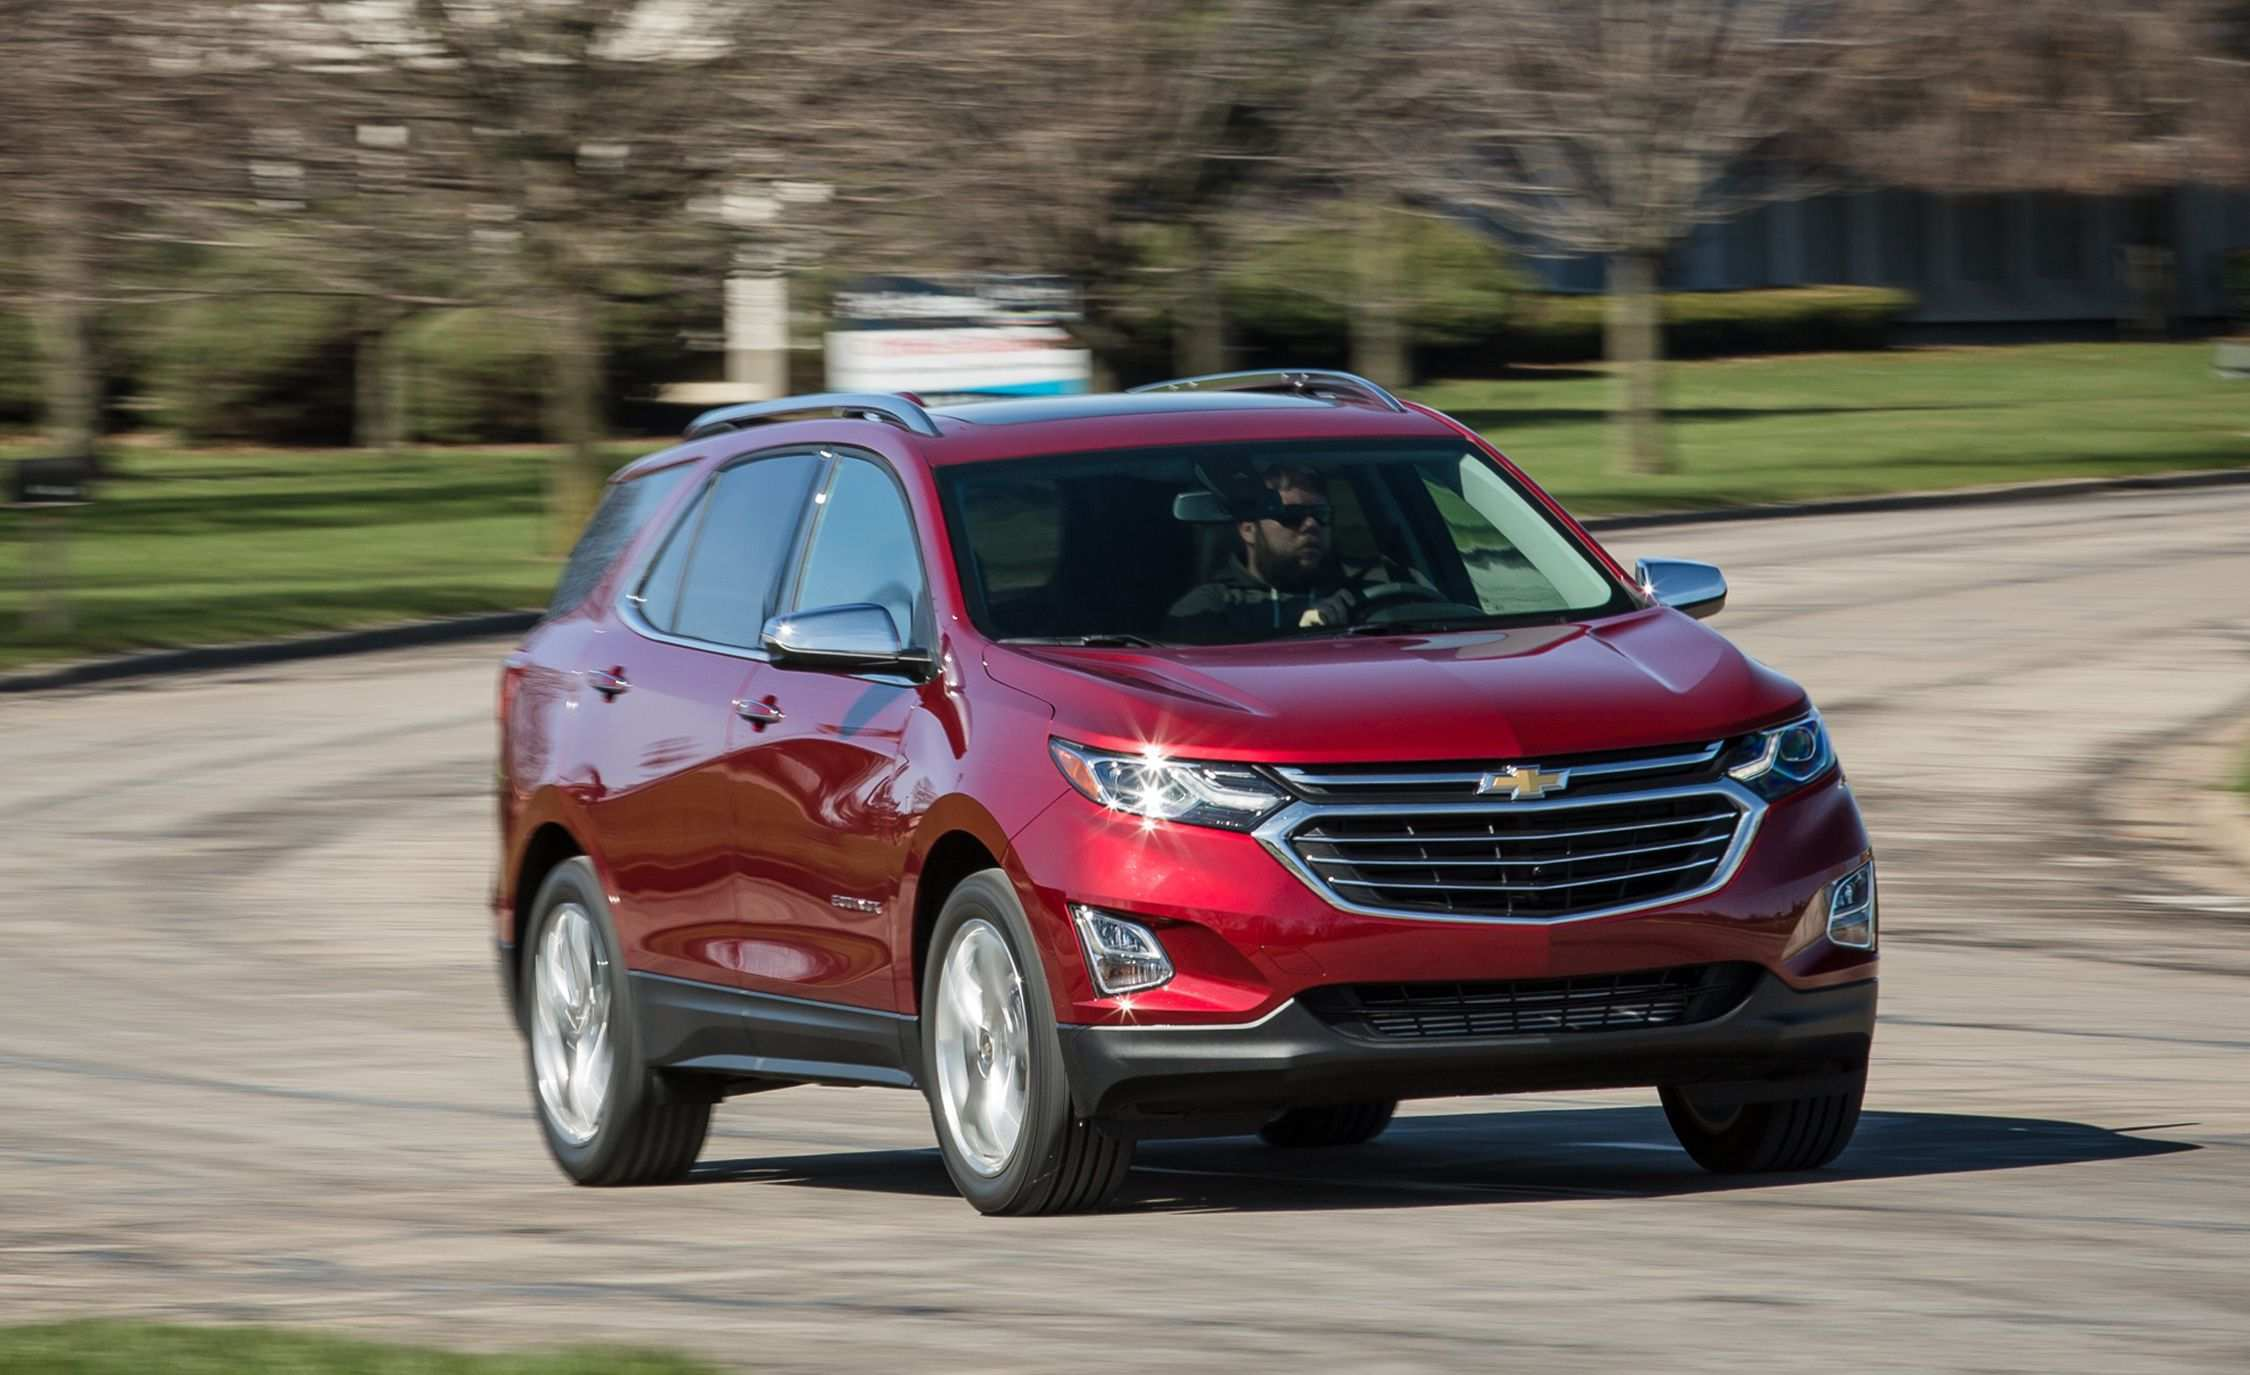 50 All New Best Chevrolet Equinox 2019 Lt New Review Picture for Best Chevrolet Equinox 2019 Lt New Review